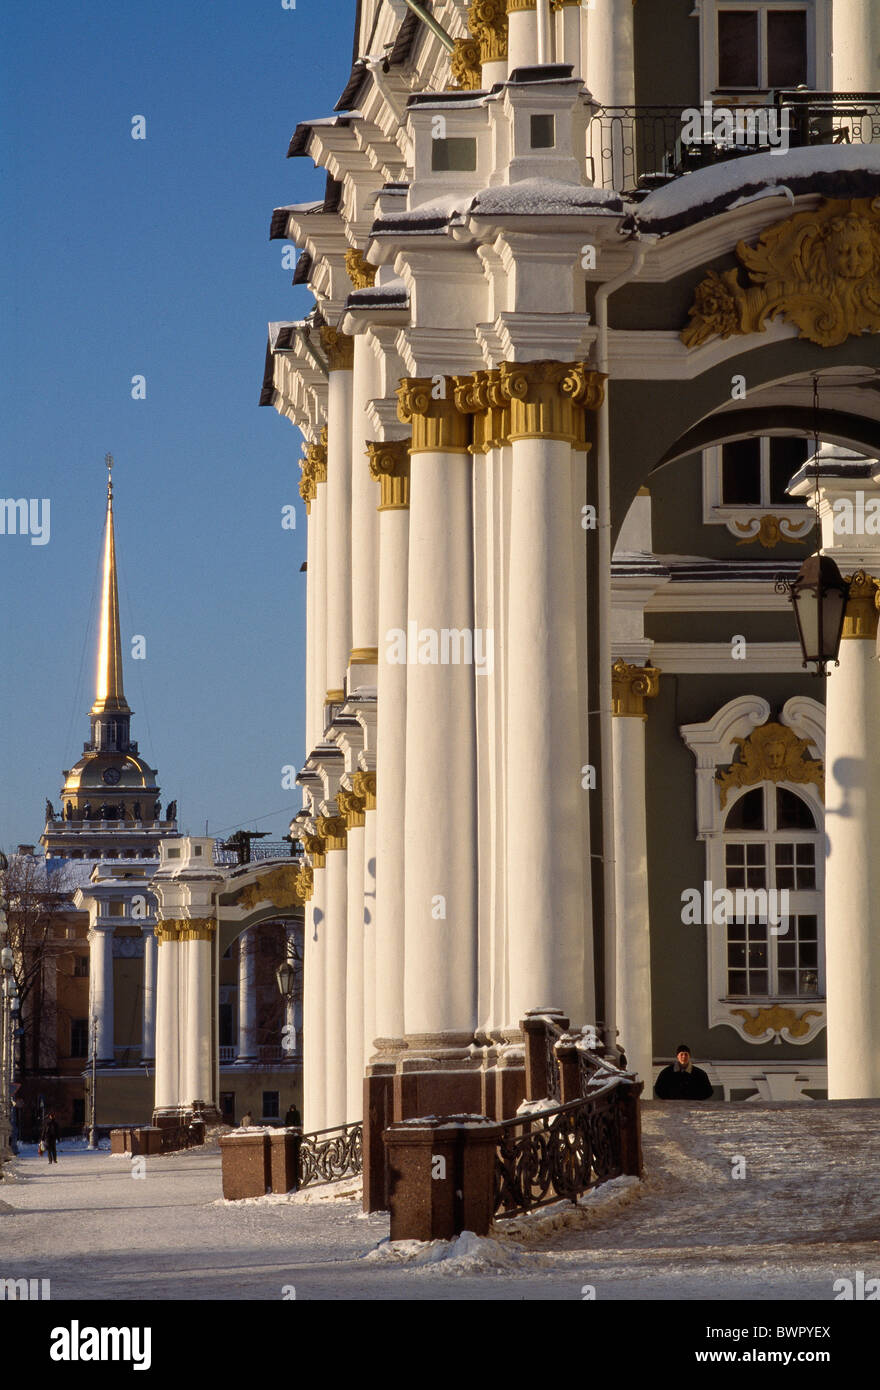 Russia Saint Petersburg Winter Palace State Hermitage Museum Art museum building architecture UNESCO World her - Stock Image